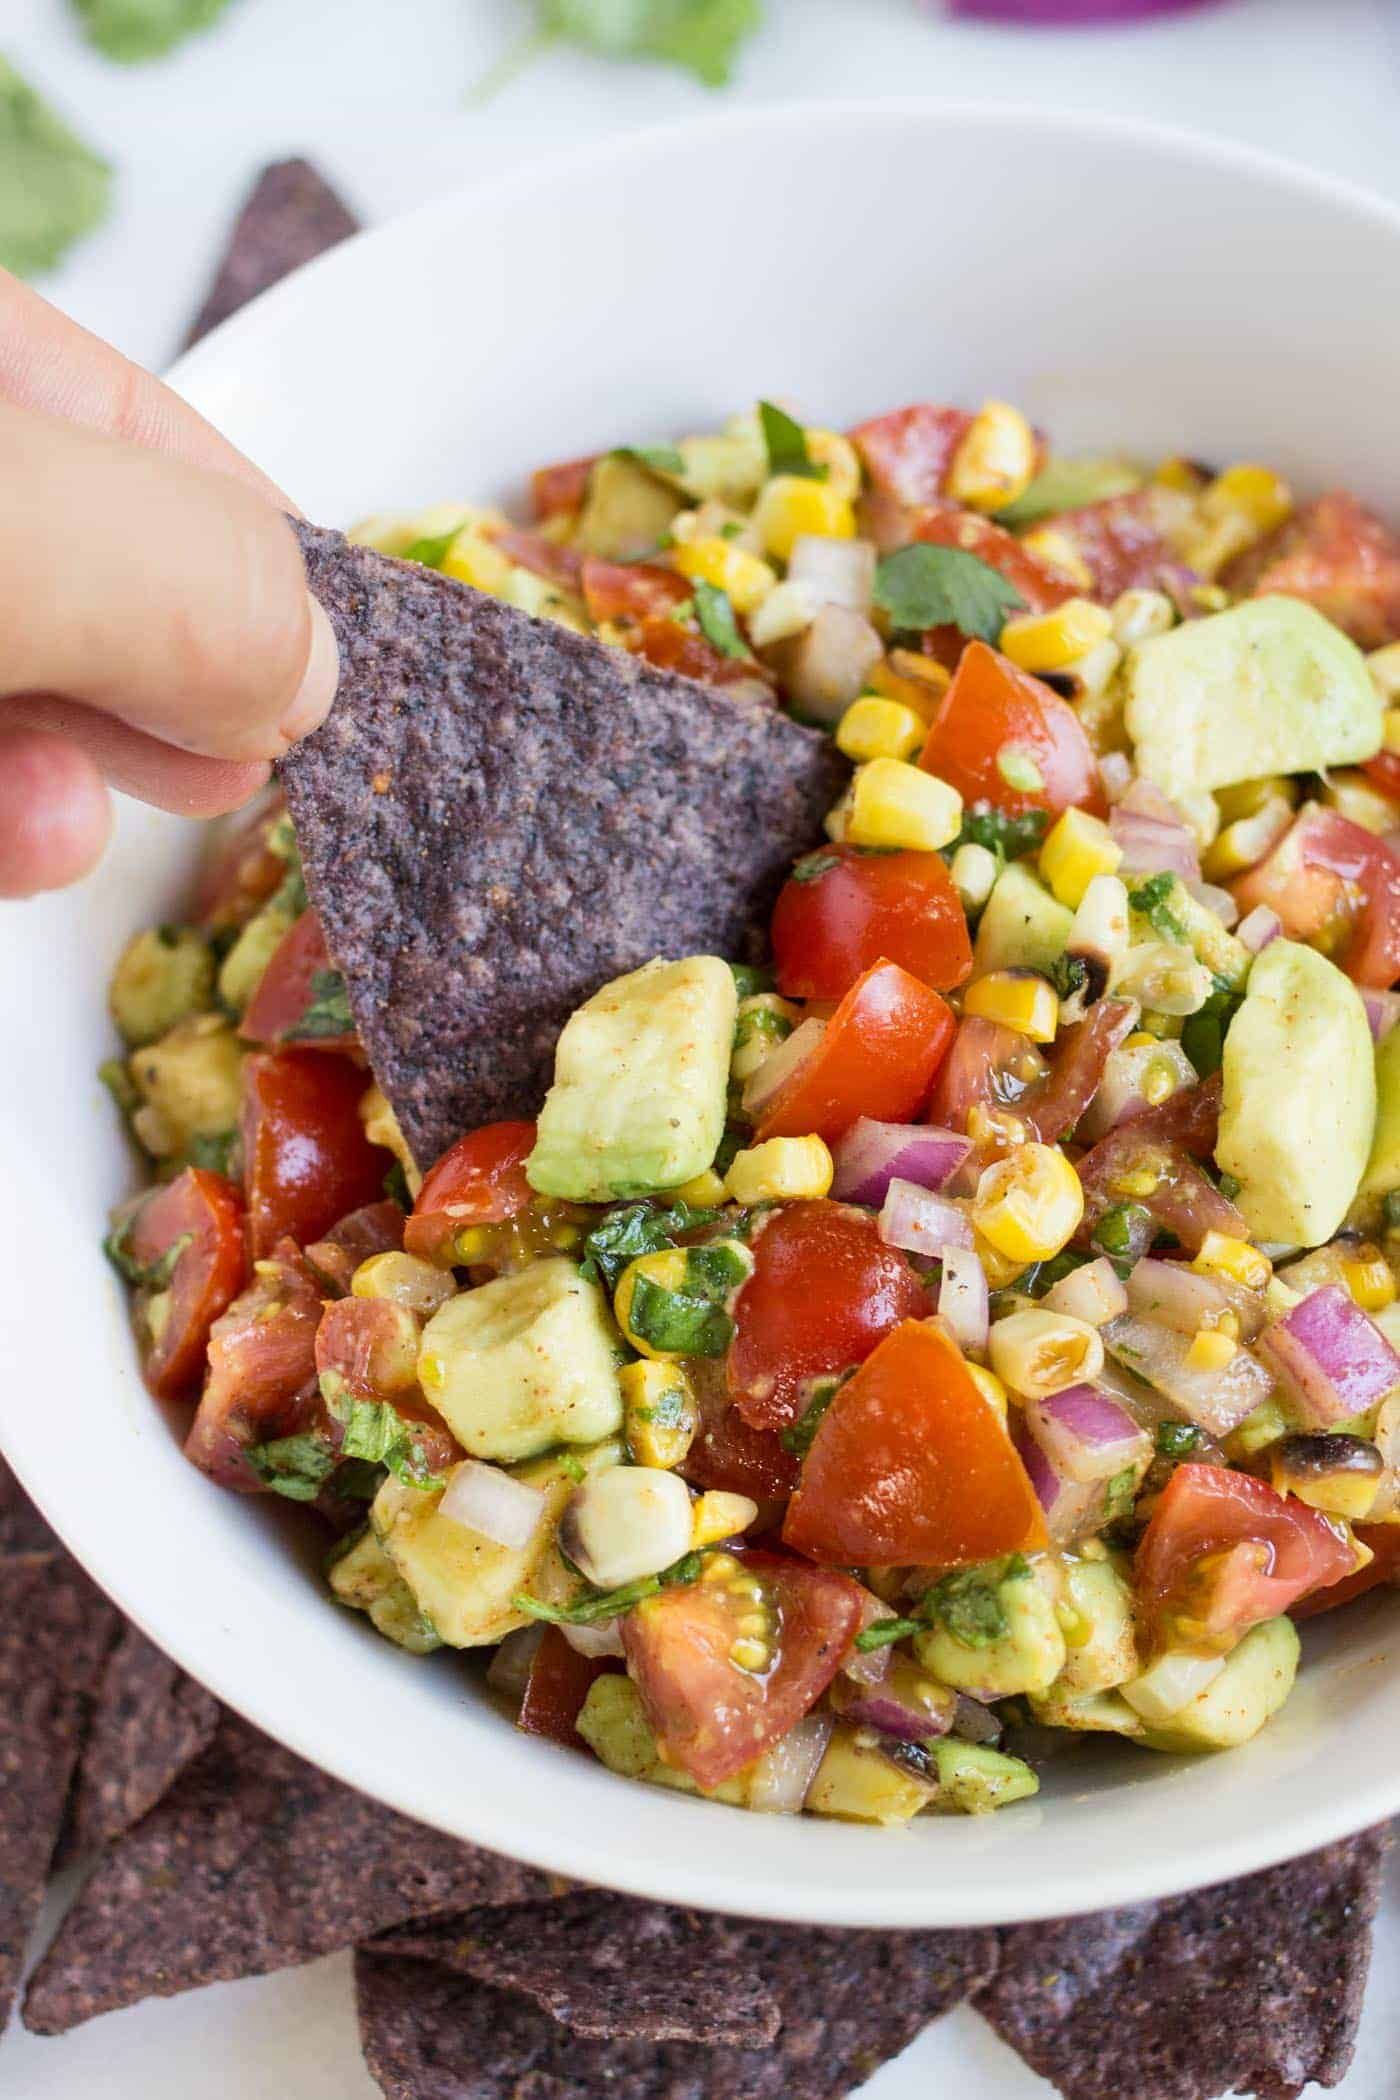 The BEST summer dip >> Grilled Corn + Avocado Salsa! healthy, easy and SO FLAVORFUL!